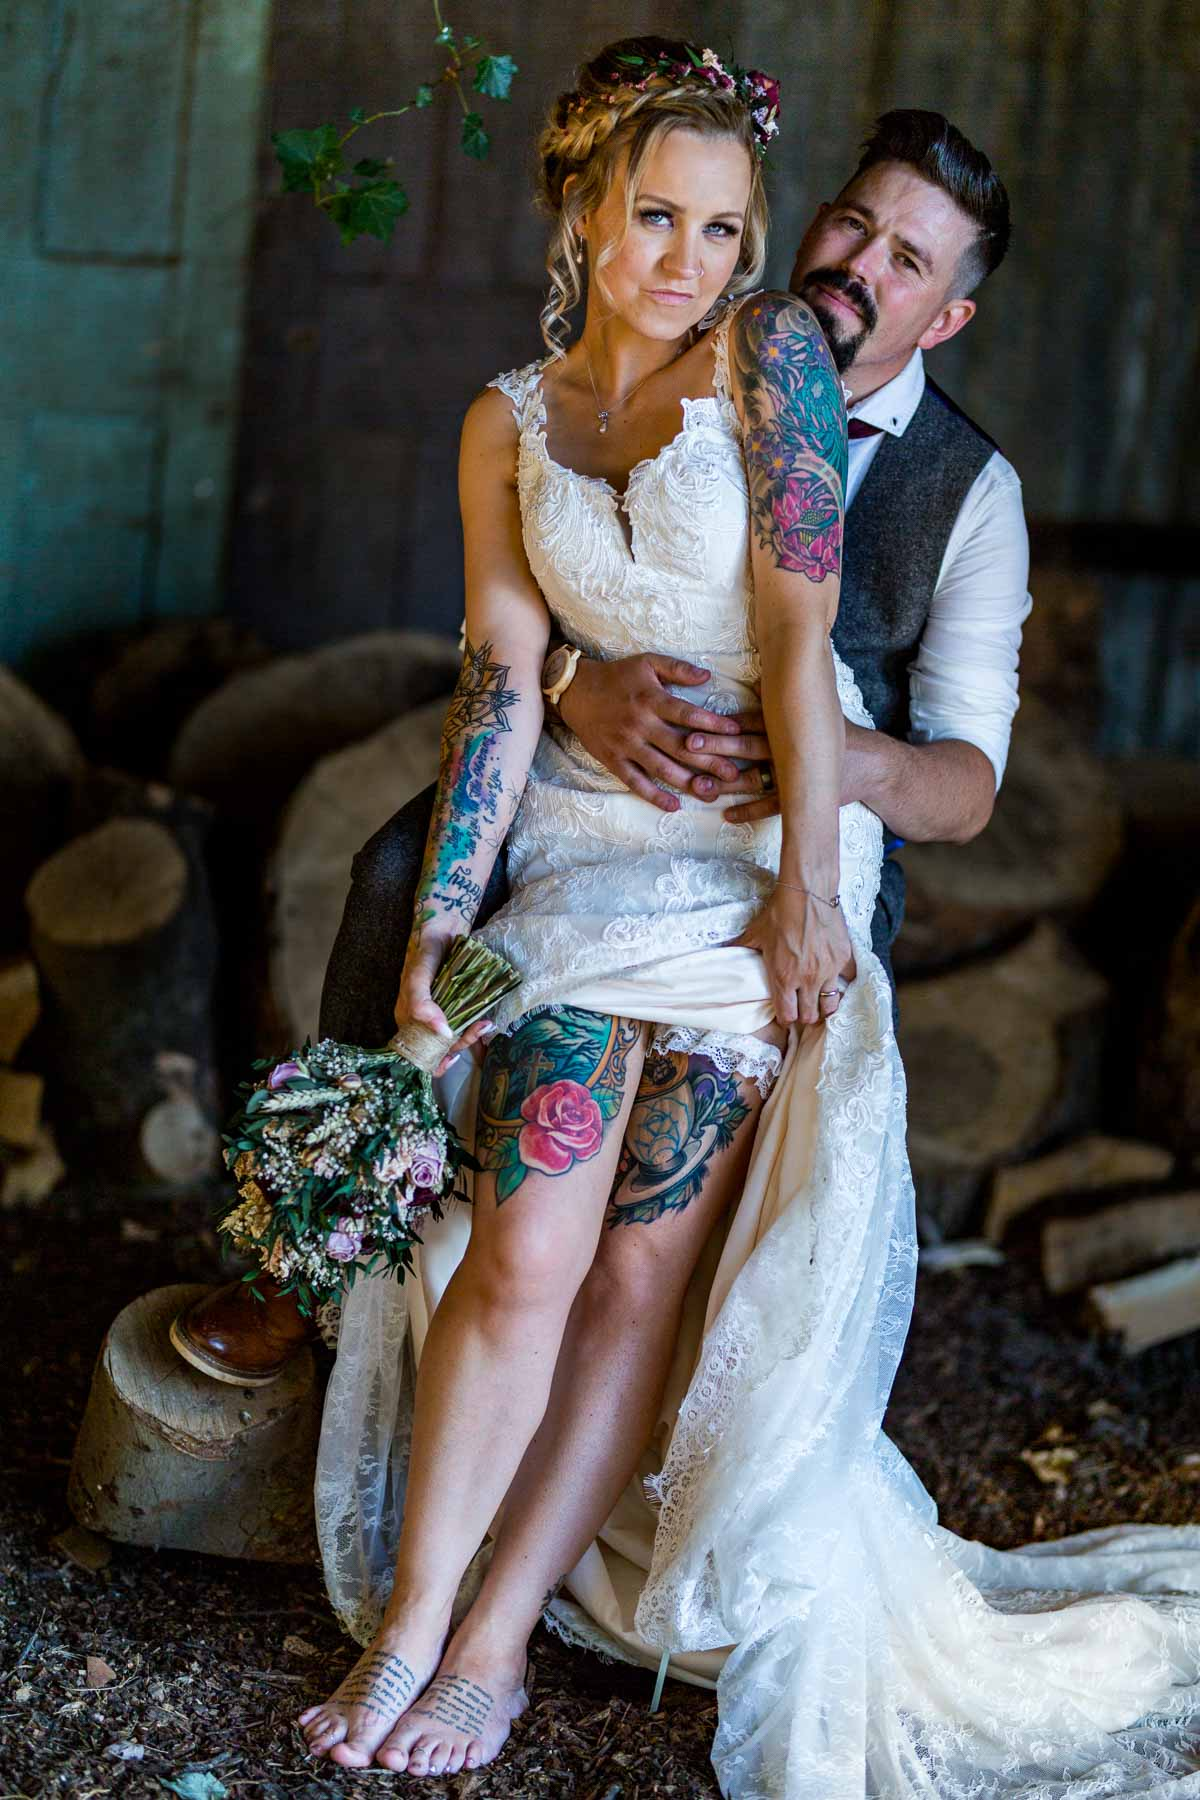 beautiful boho bride showing her tattoos in a moody photo taken in a old barn